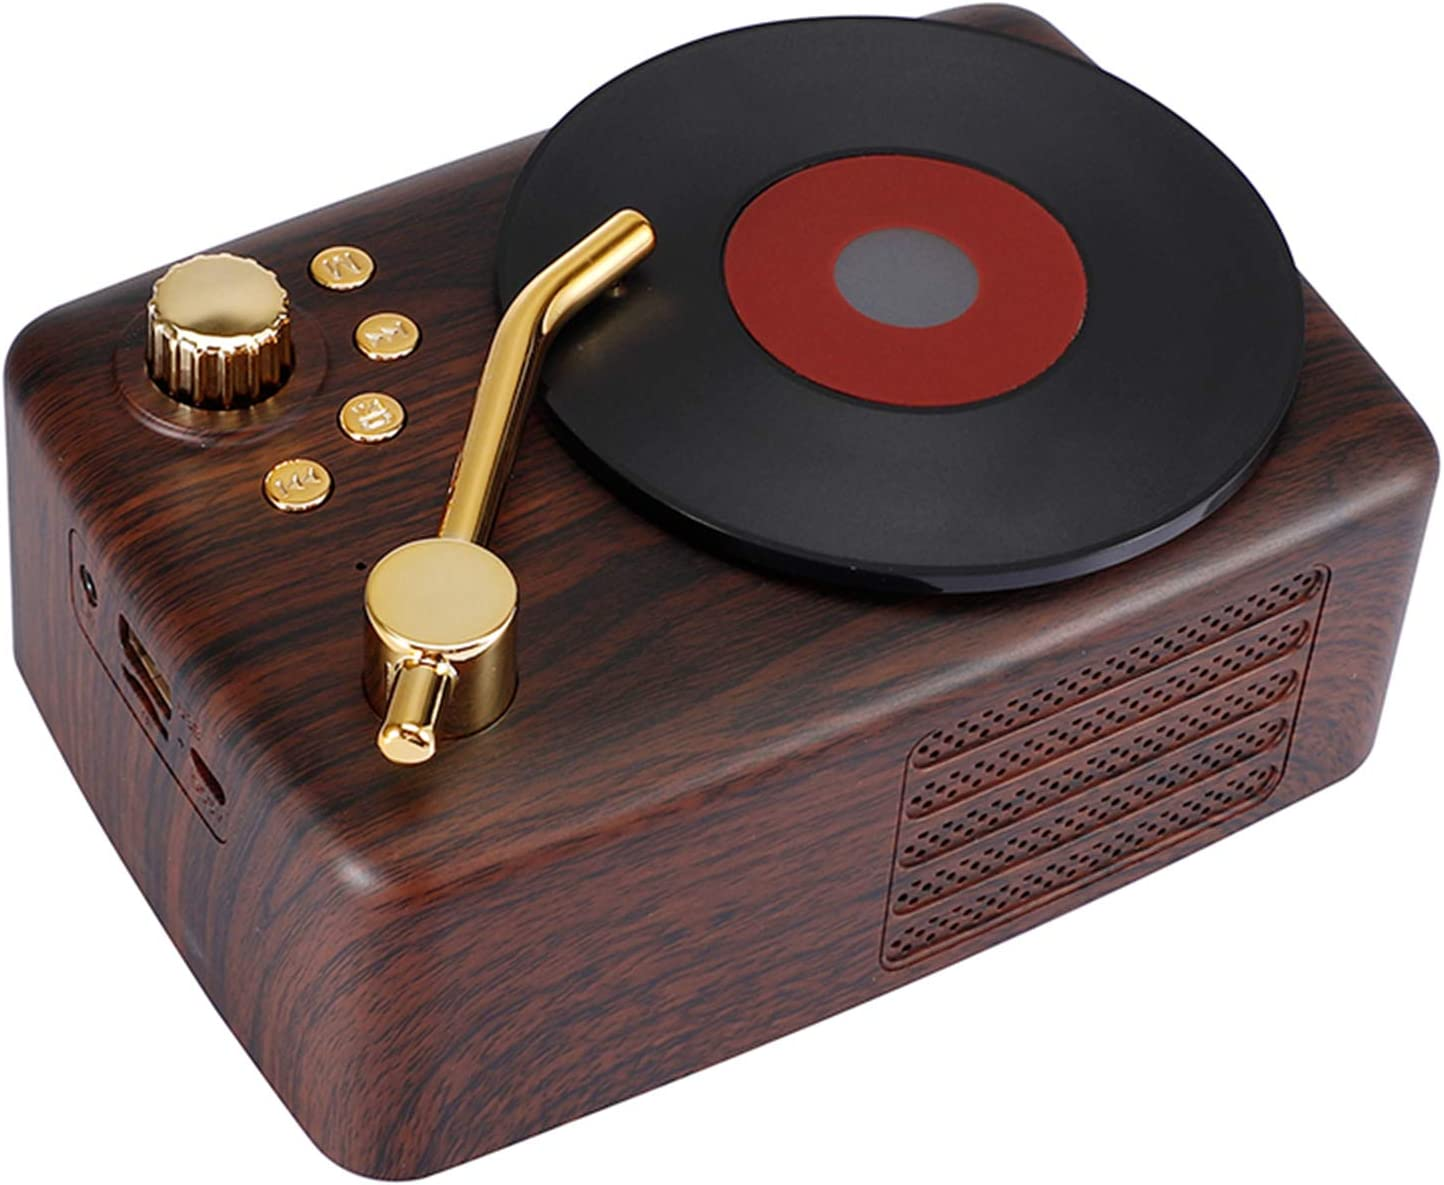 GOOG Portable Retro Bluetooth Speaker, with FM Radio, TF Card/U Disk/AUX Audio Input Old Fashioned Record Player Style Vintage Imitation Wood Wireless Bluetooth Speakers for Home, Outdoor Music Party